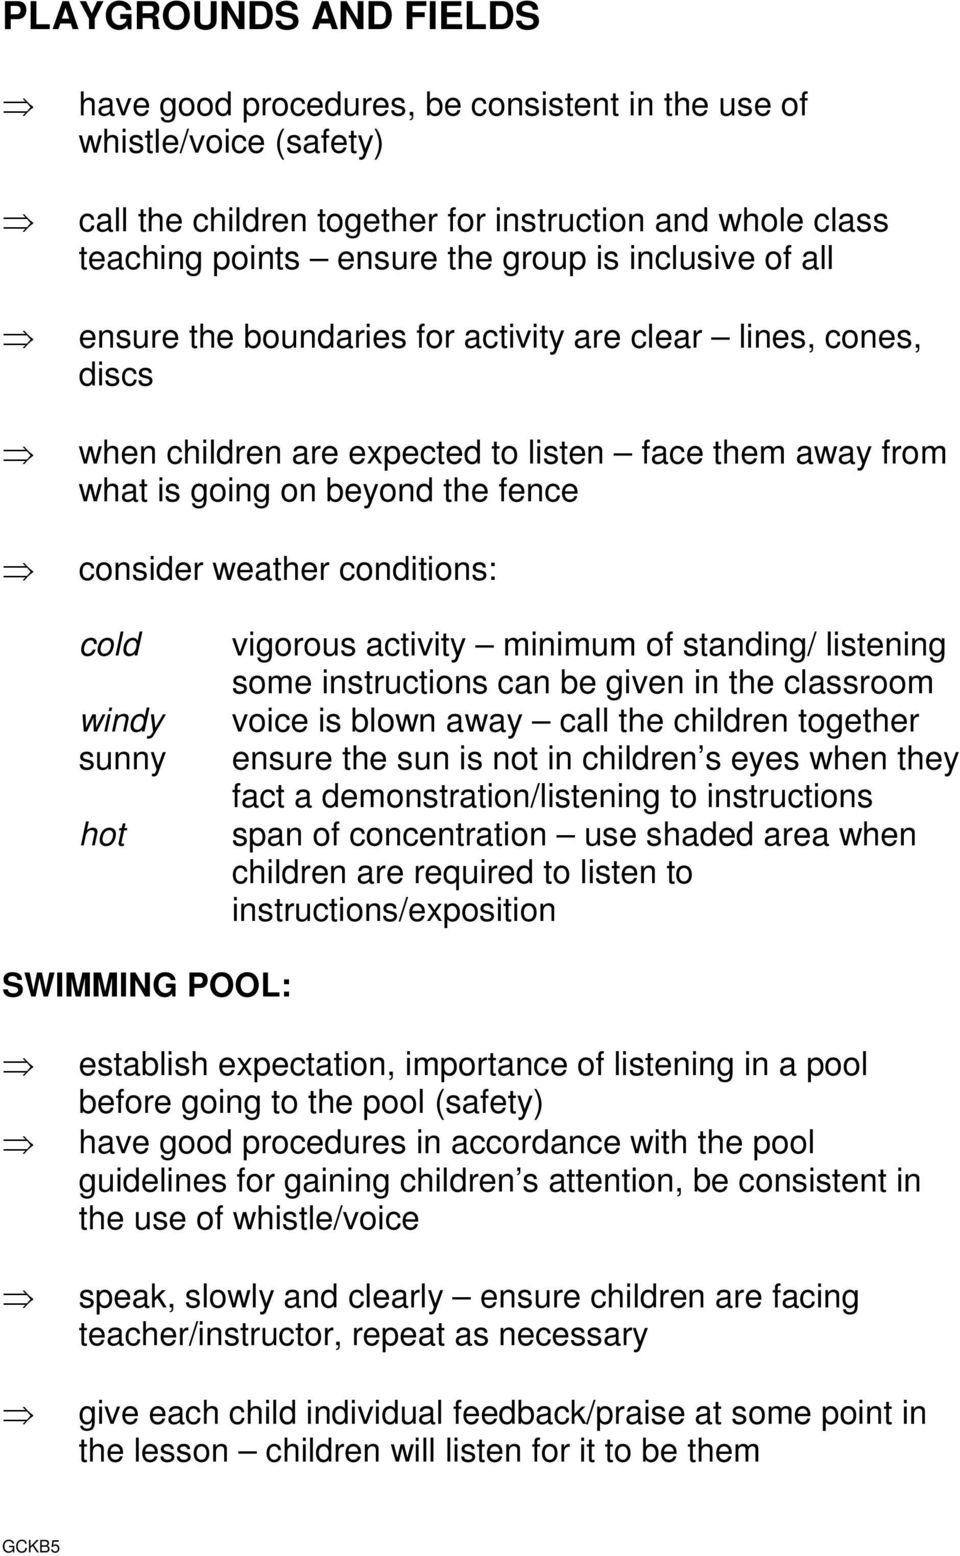 conditions: cold windy sunny hot vigorous activity minimum of standing/ listening some instructions can be given in the classroom voice is blown away call the children together ensure the sun is not